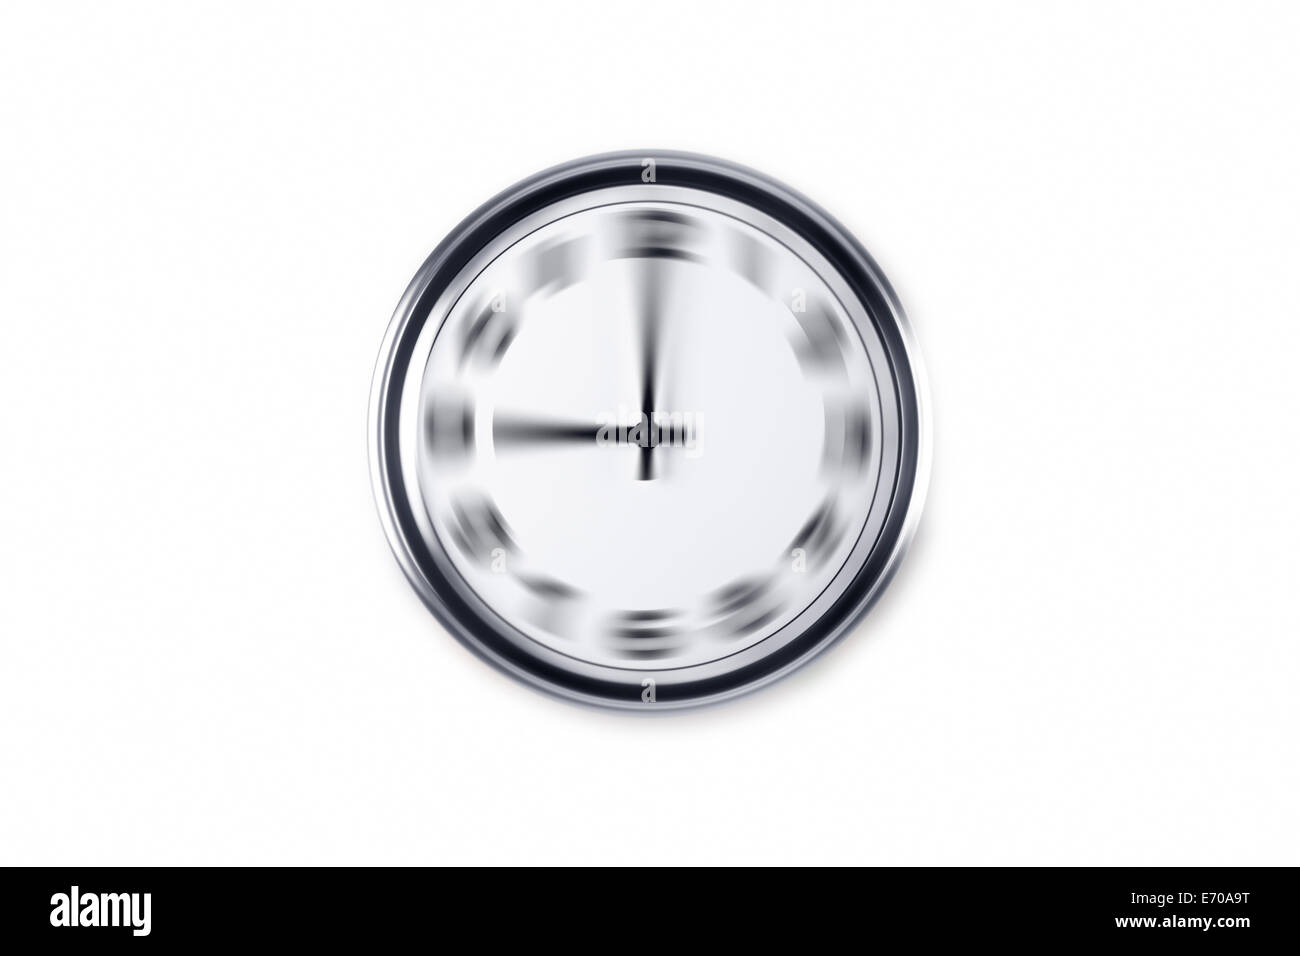 Radial blurry wall clock, isolated on white background. - Stock Image